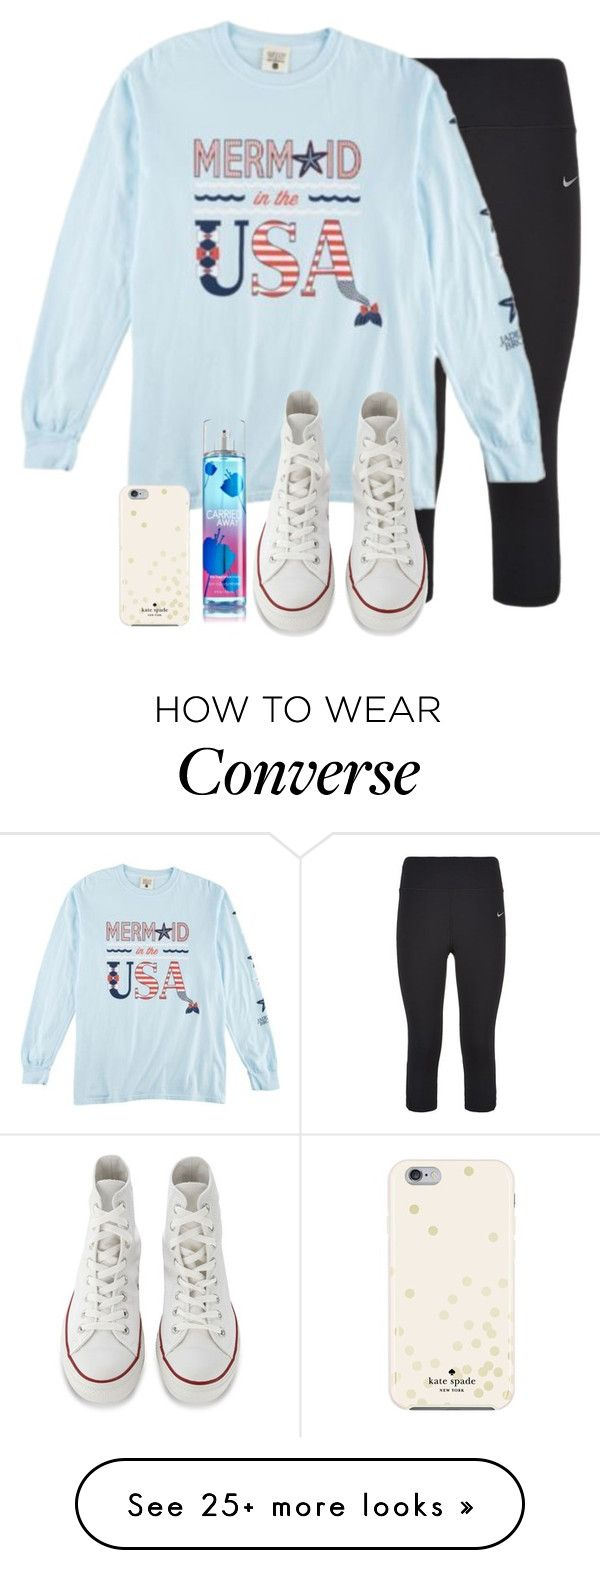 """I reeaallyy want a Jadelynn Brooke shirt"" by hailstails on Polyvore featuring NIKE, Converse, Kate Spade, women's clothing, women's fashion, women, female, woman, misses and juniors"